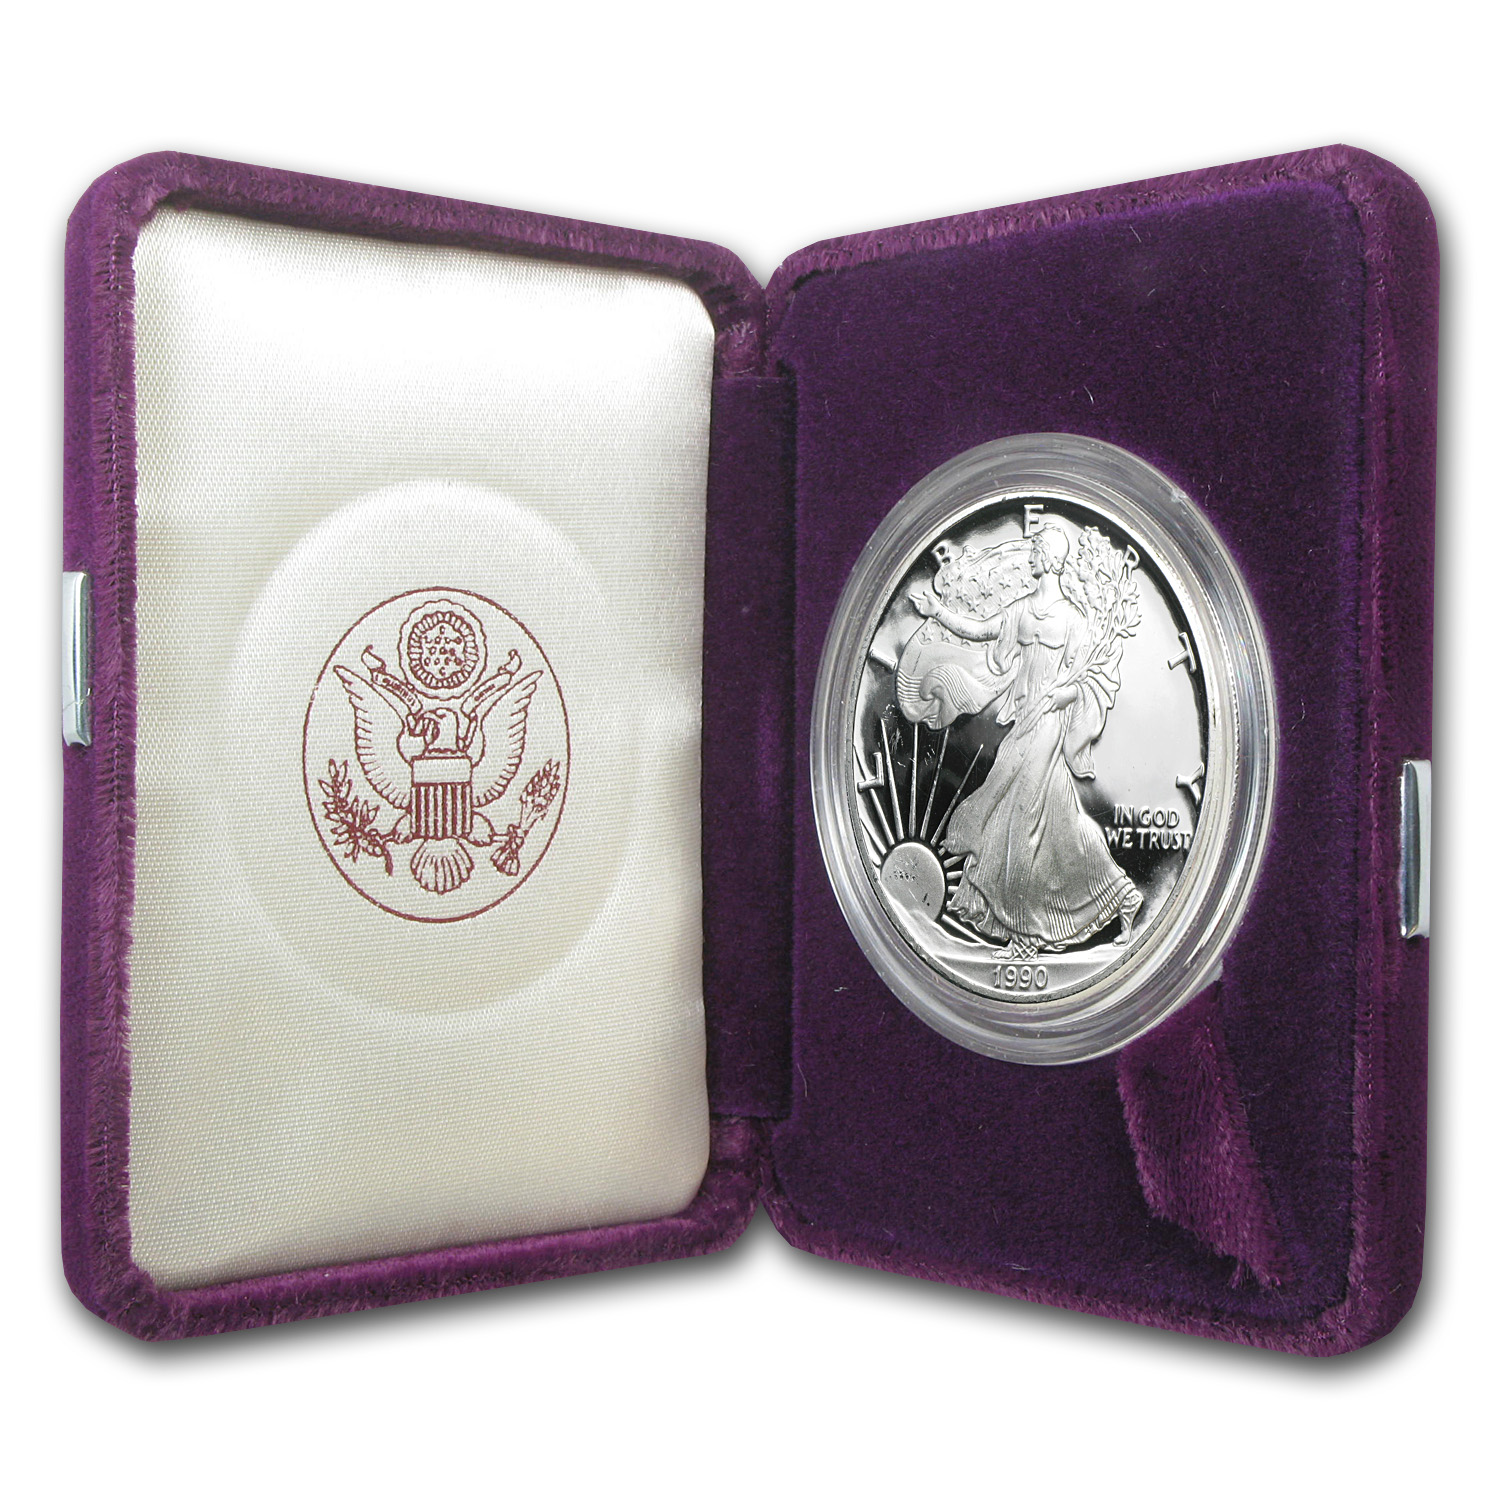 1990-S 1 oz Proof Silver American Eagle (w/Box & CoA)